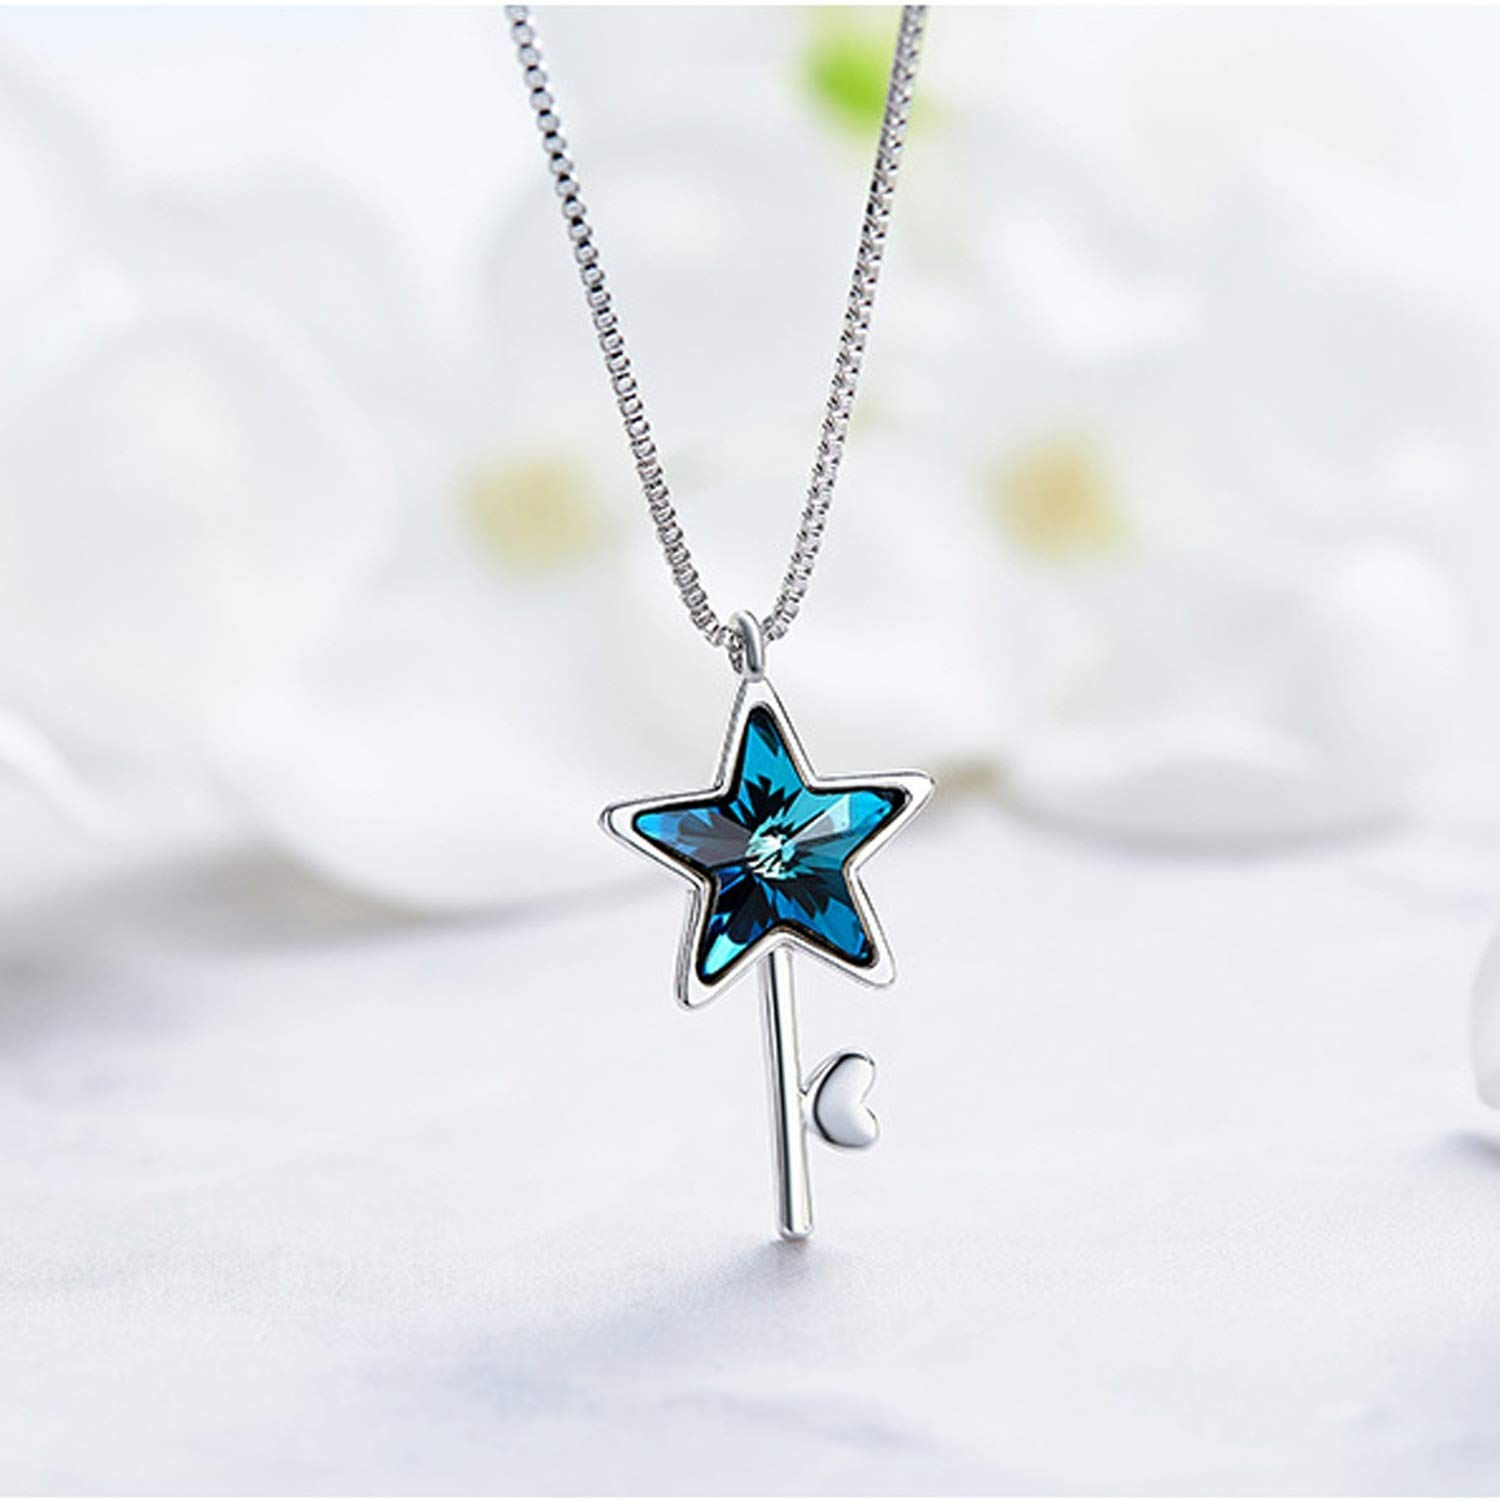 Epinki 925 Sterling Silver Women Necklace Star Pendant Women Chain Silver Necklace with Cubic Zirconia